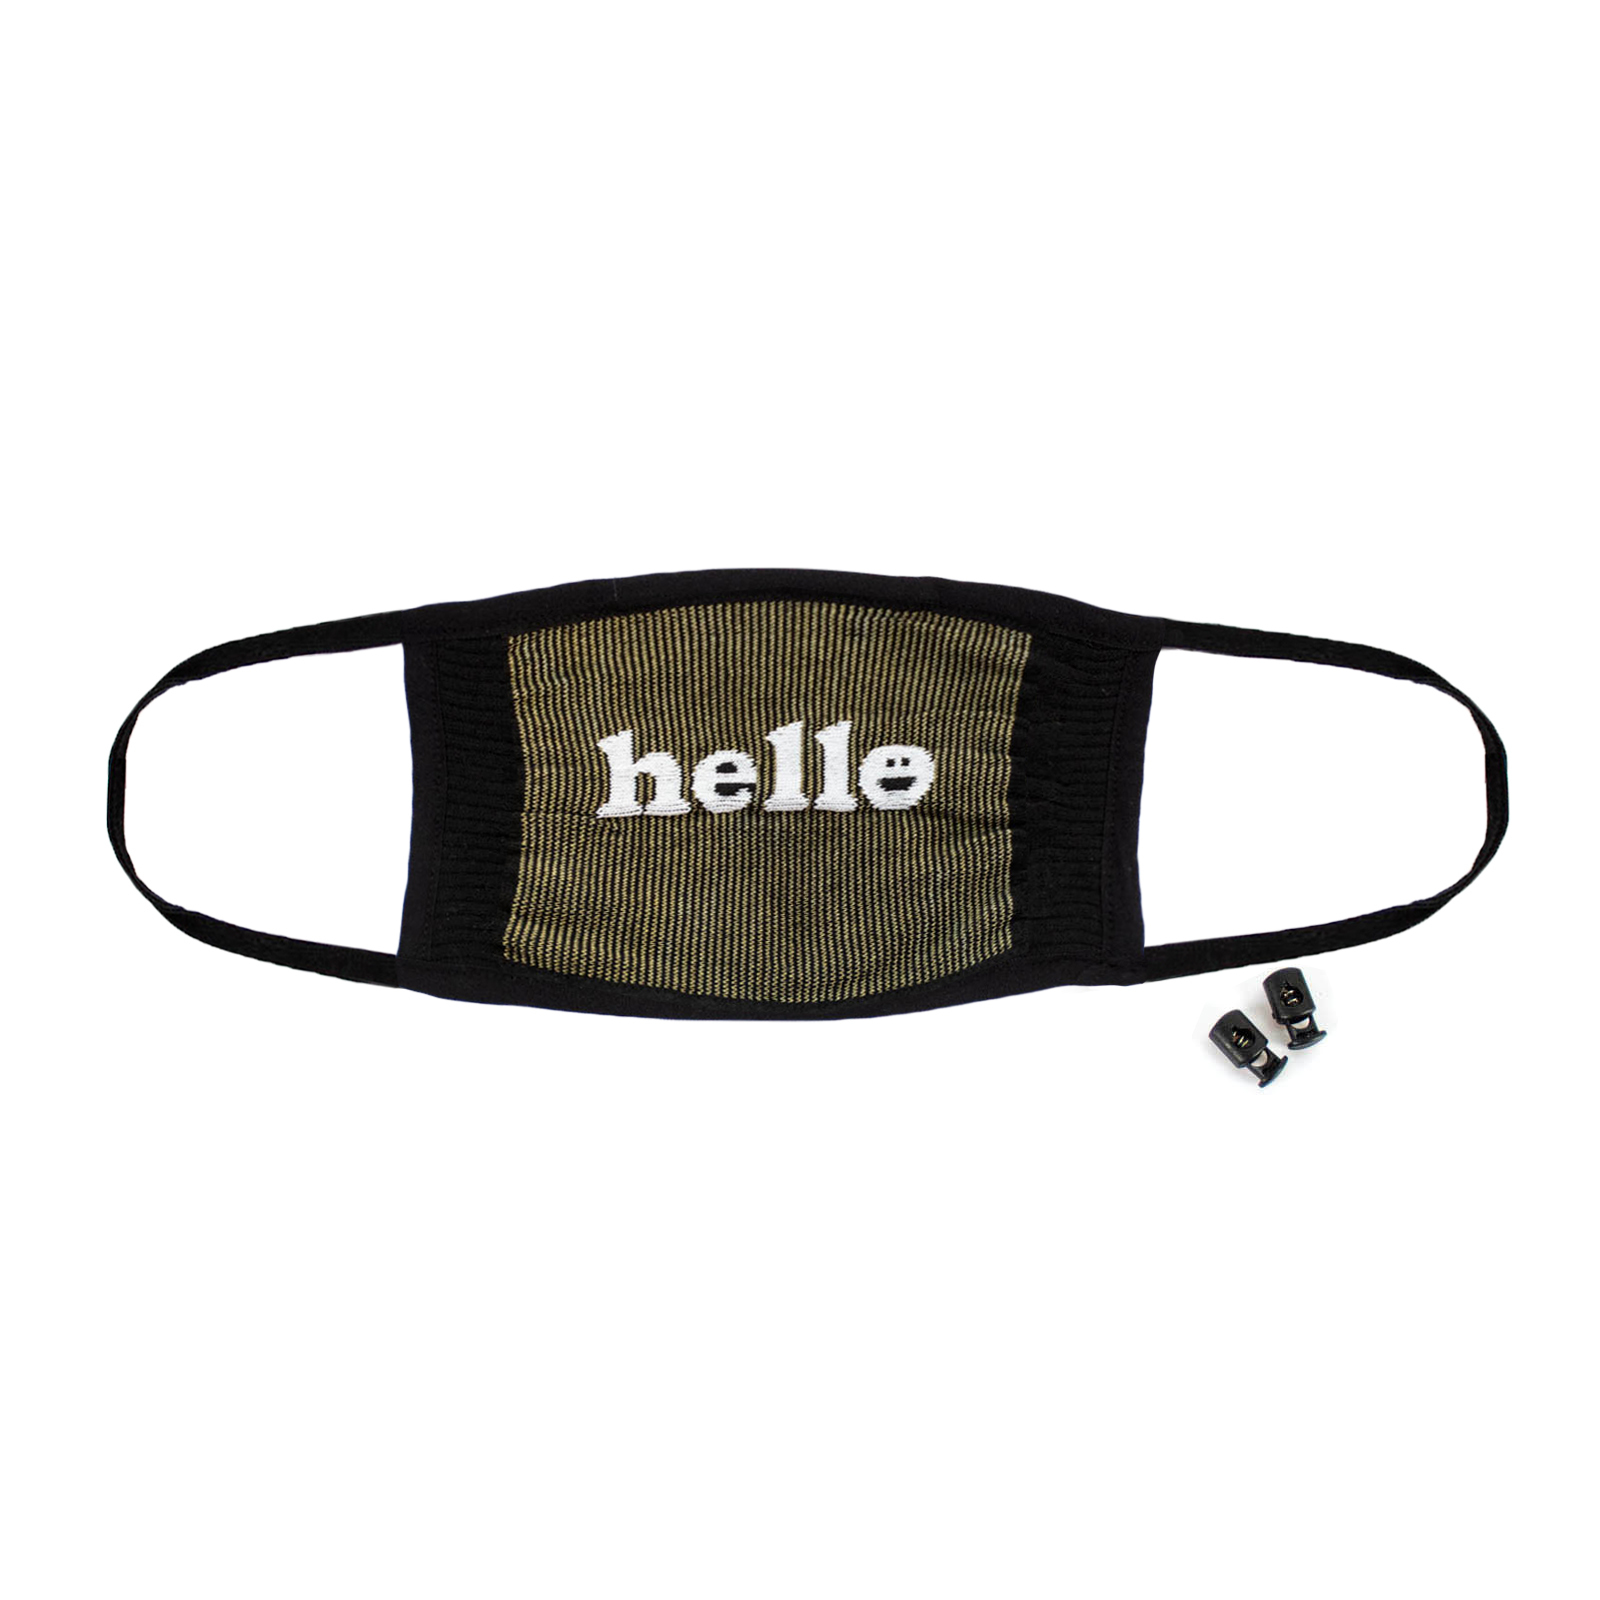 You Had Me at Hello - Statement Face Masks Black - Unisex in Black